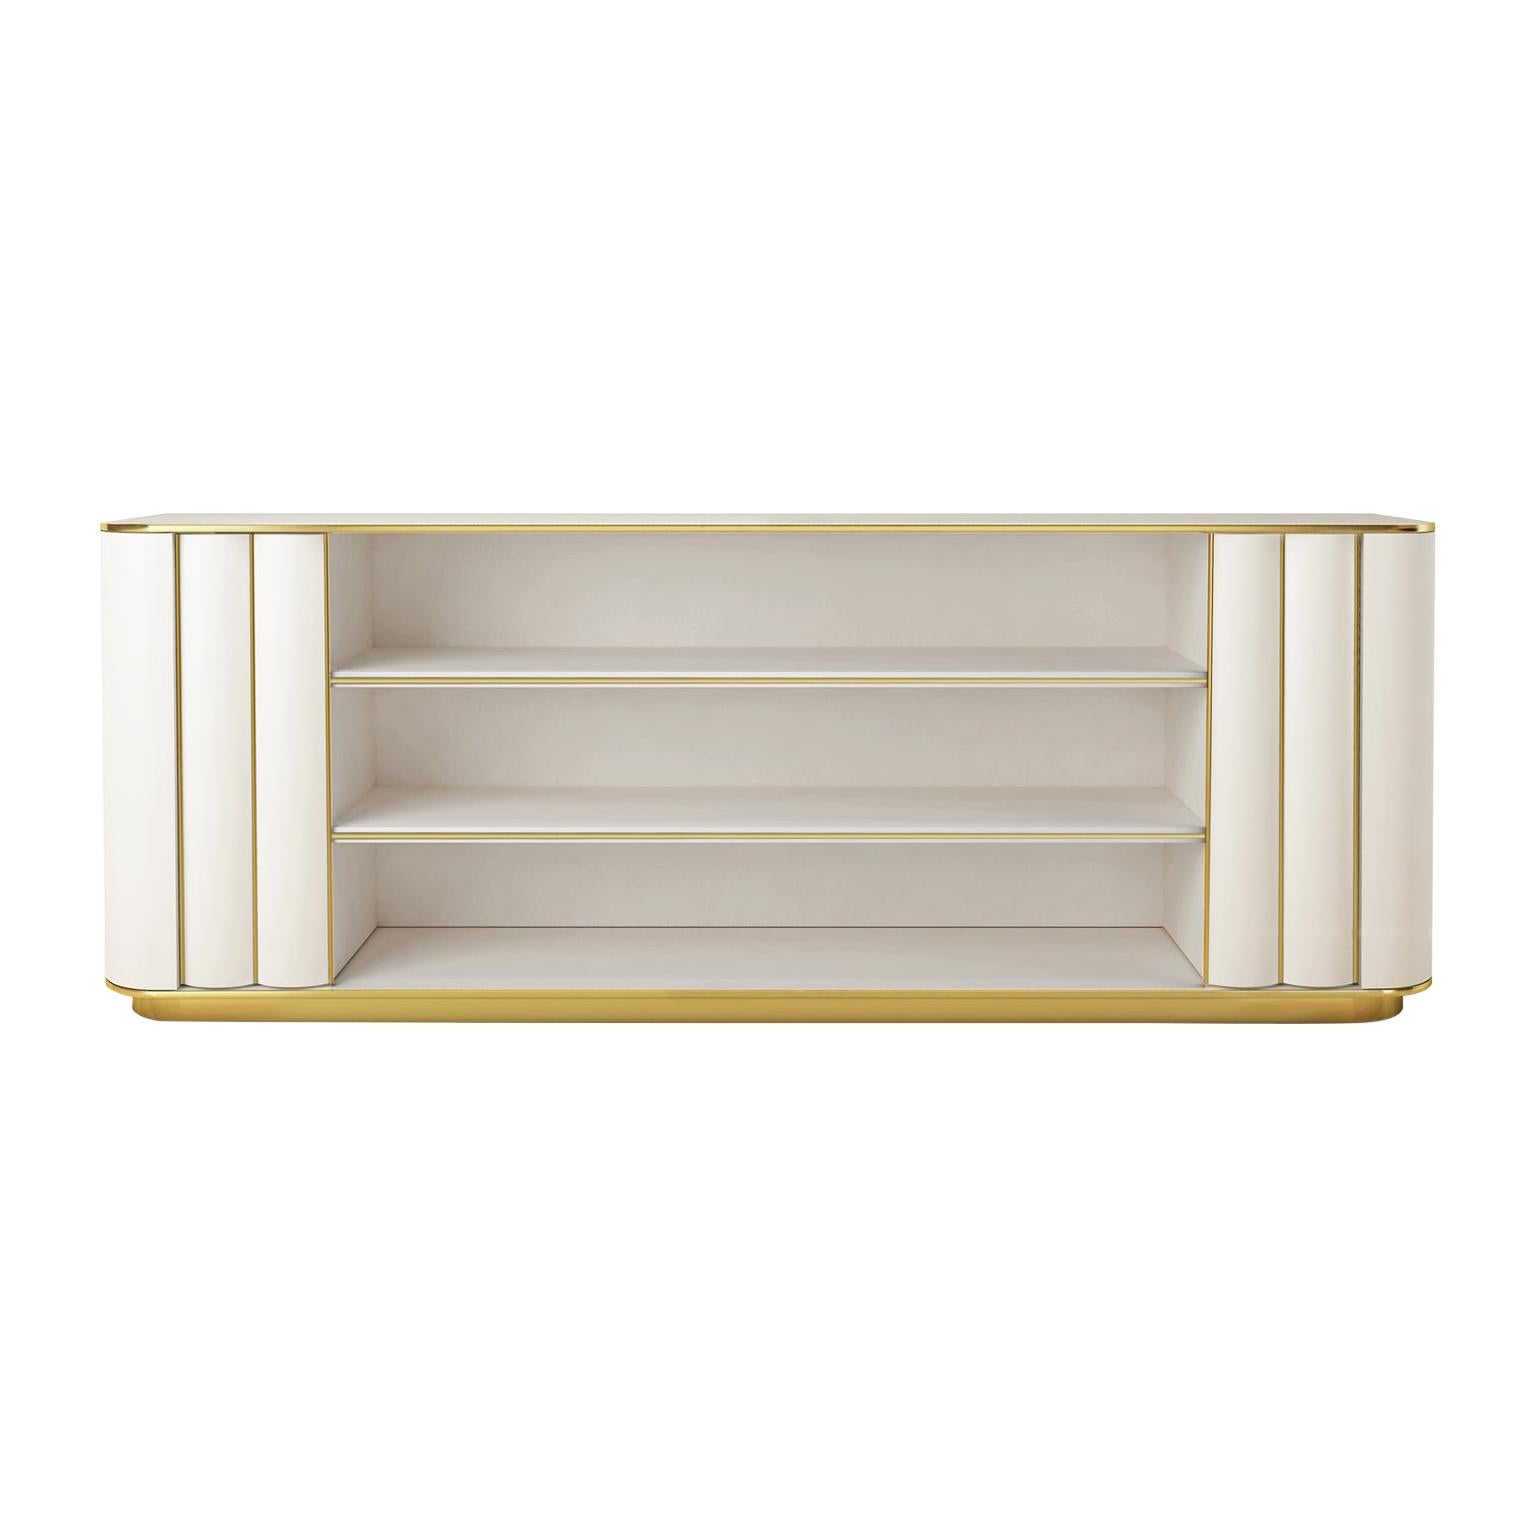 Isabella Costantini, Italy, Duilio Low Bookcase with Two Doors